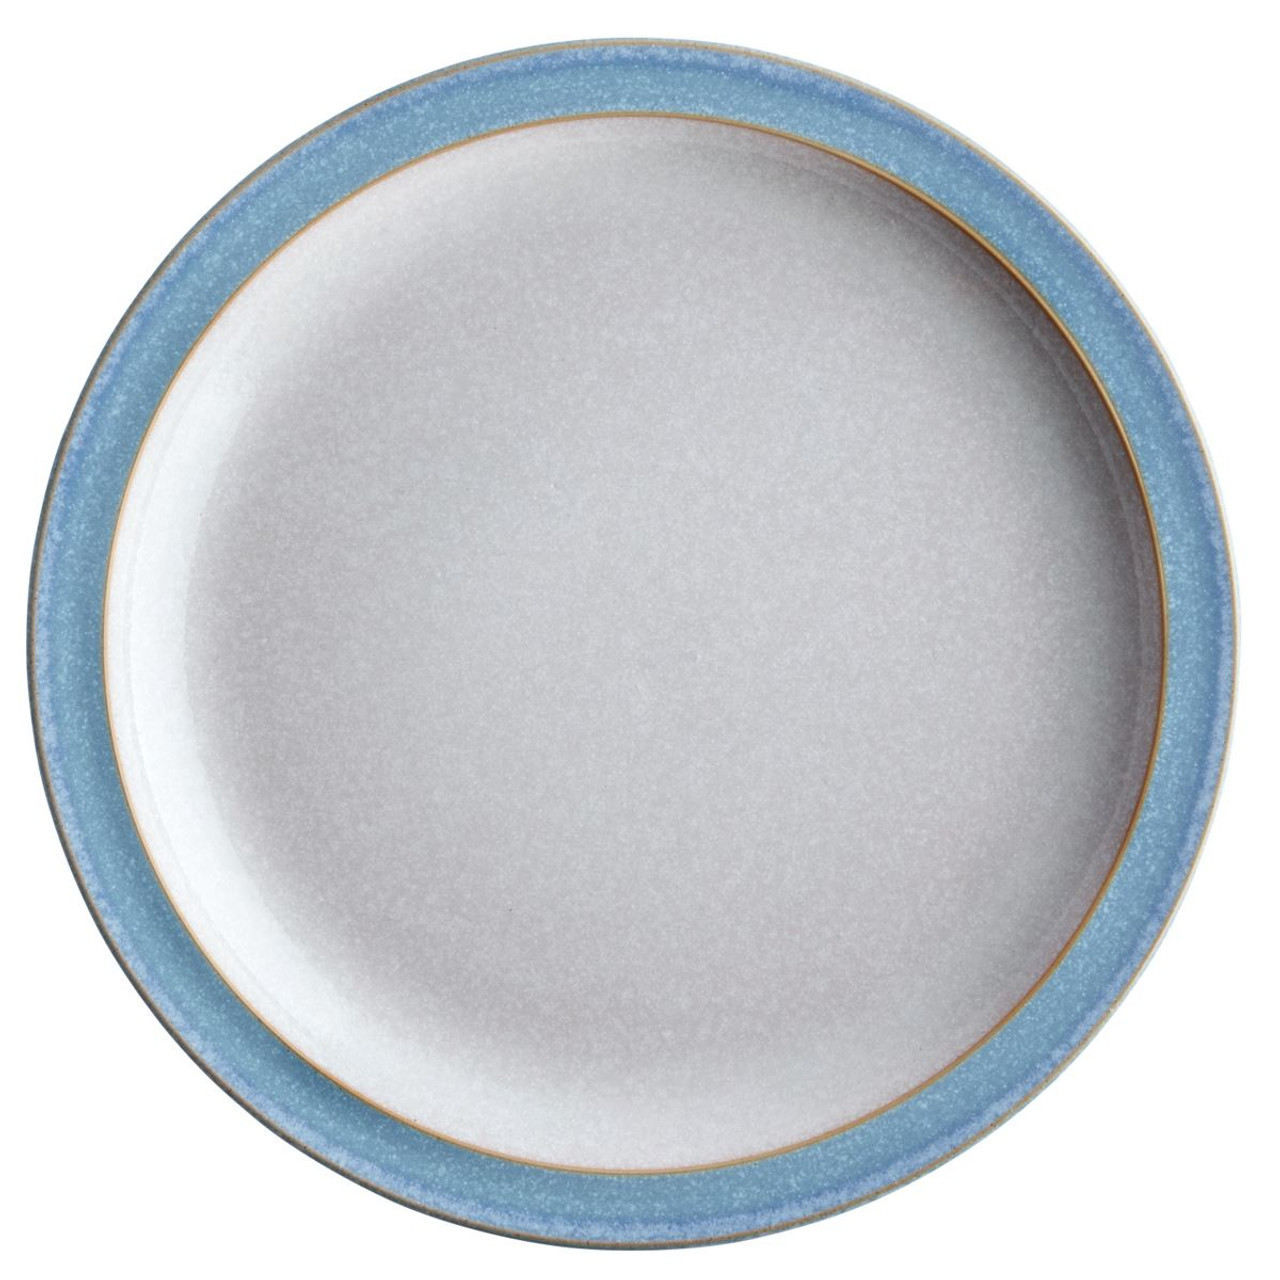 Denby Elements Light Blue Small Plate